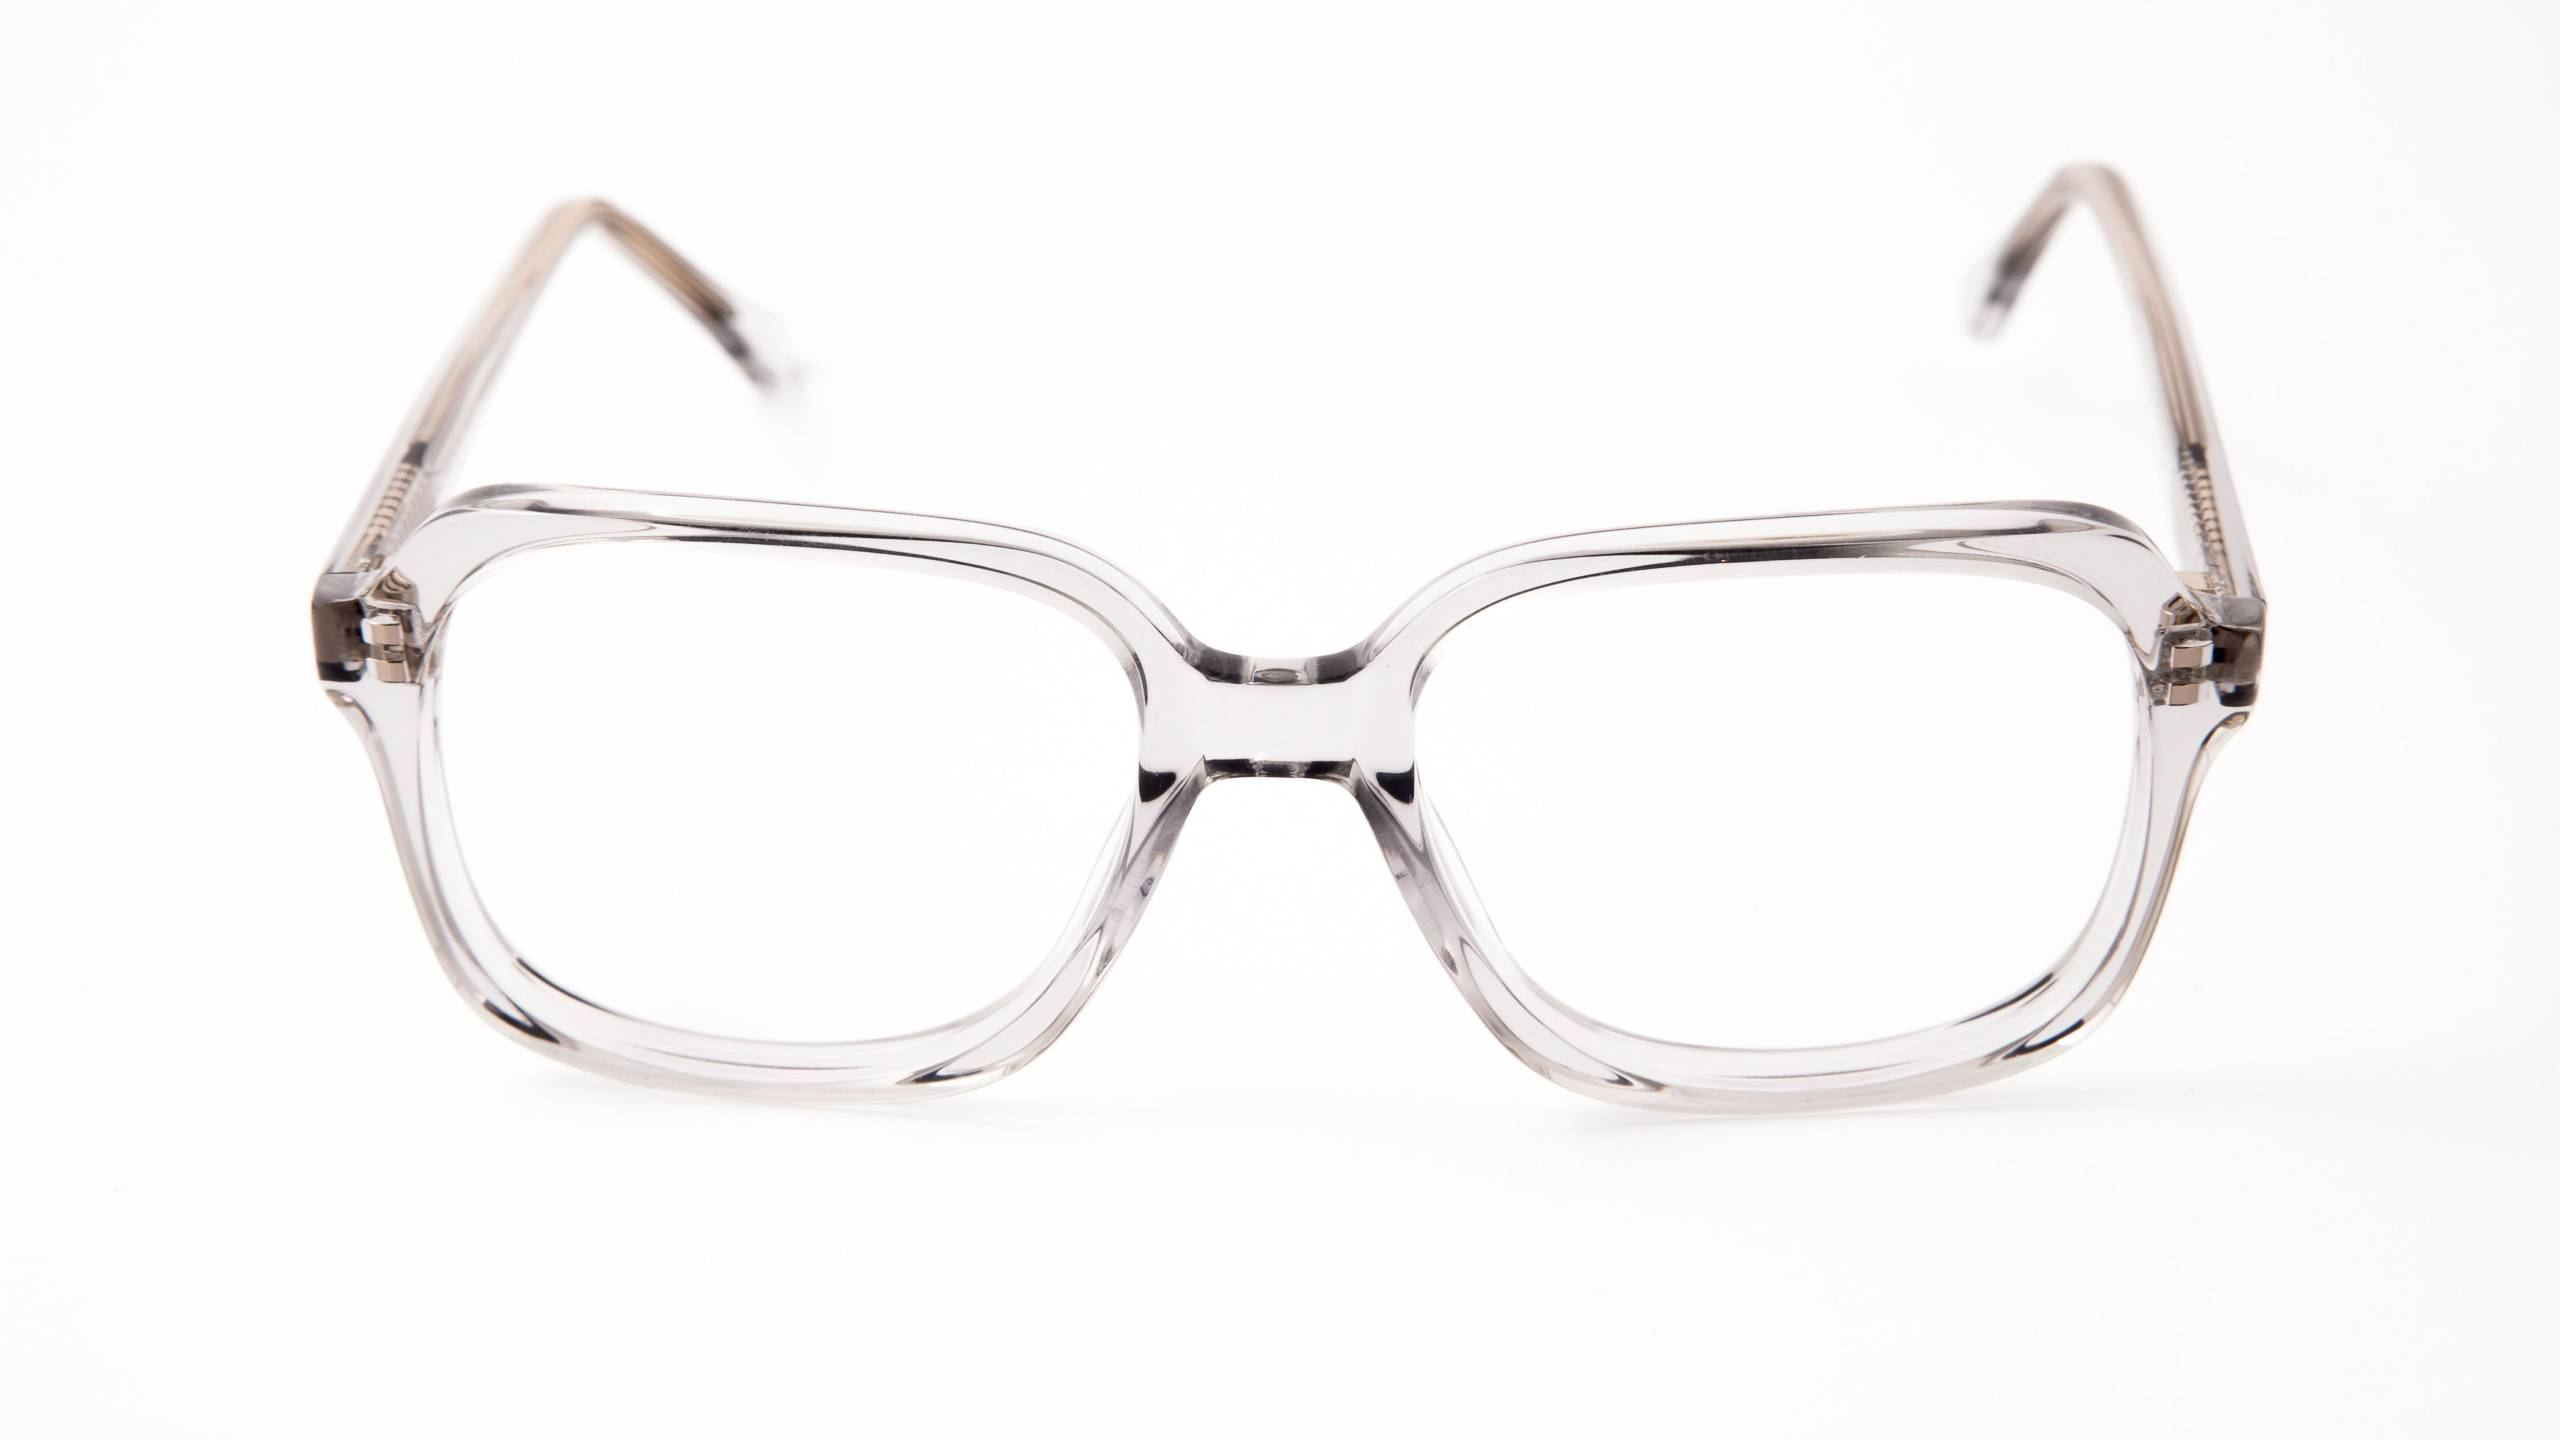 eyeglasses-Nathan-Kaltermann-made-in-Italy-KENNEDY-COL